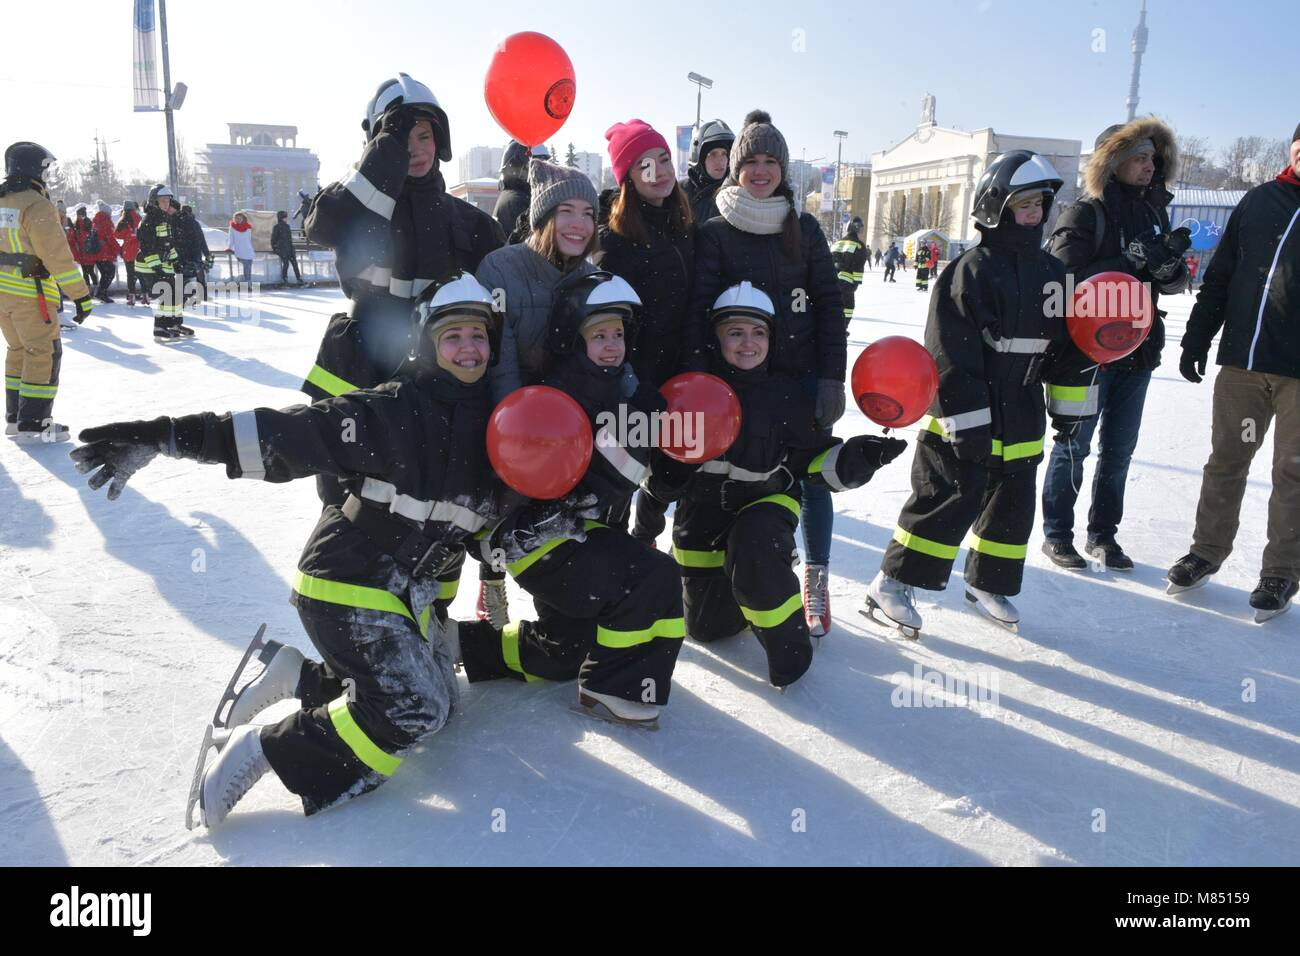 February 24, 2018  - Russia, Moscow  - Opening of the 7th